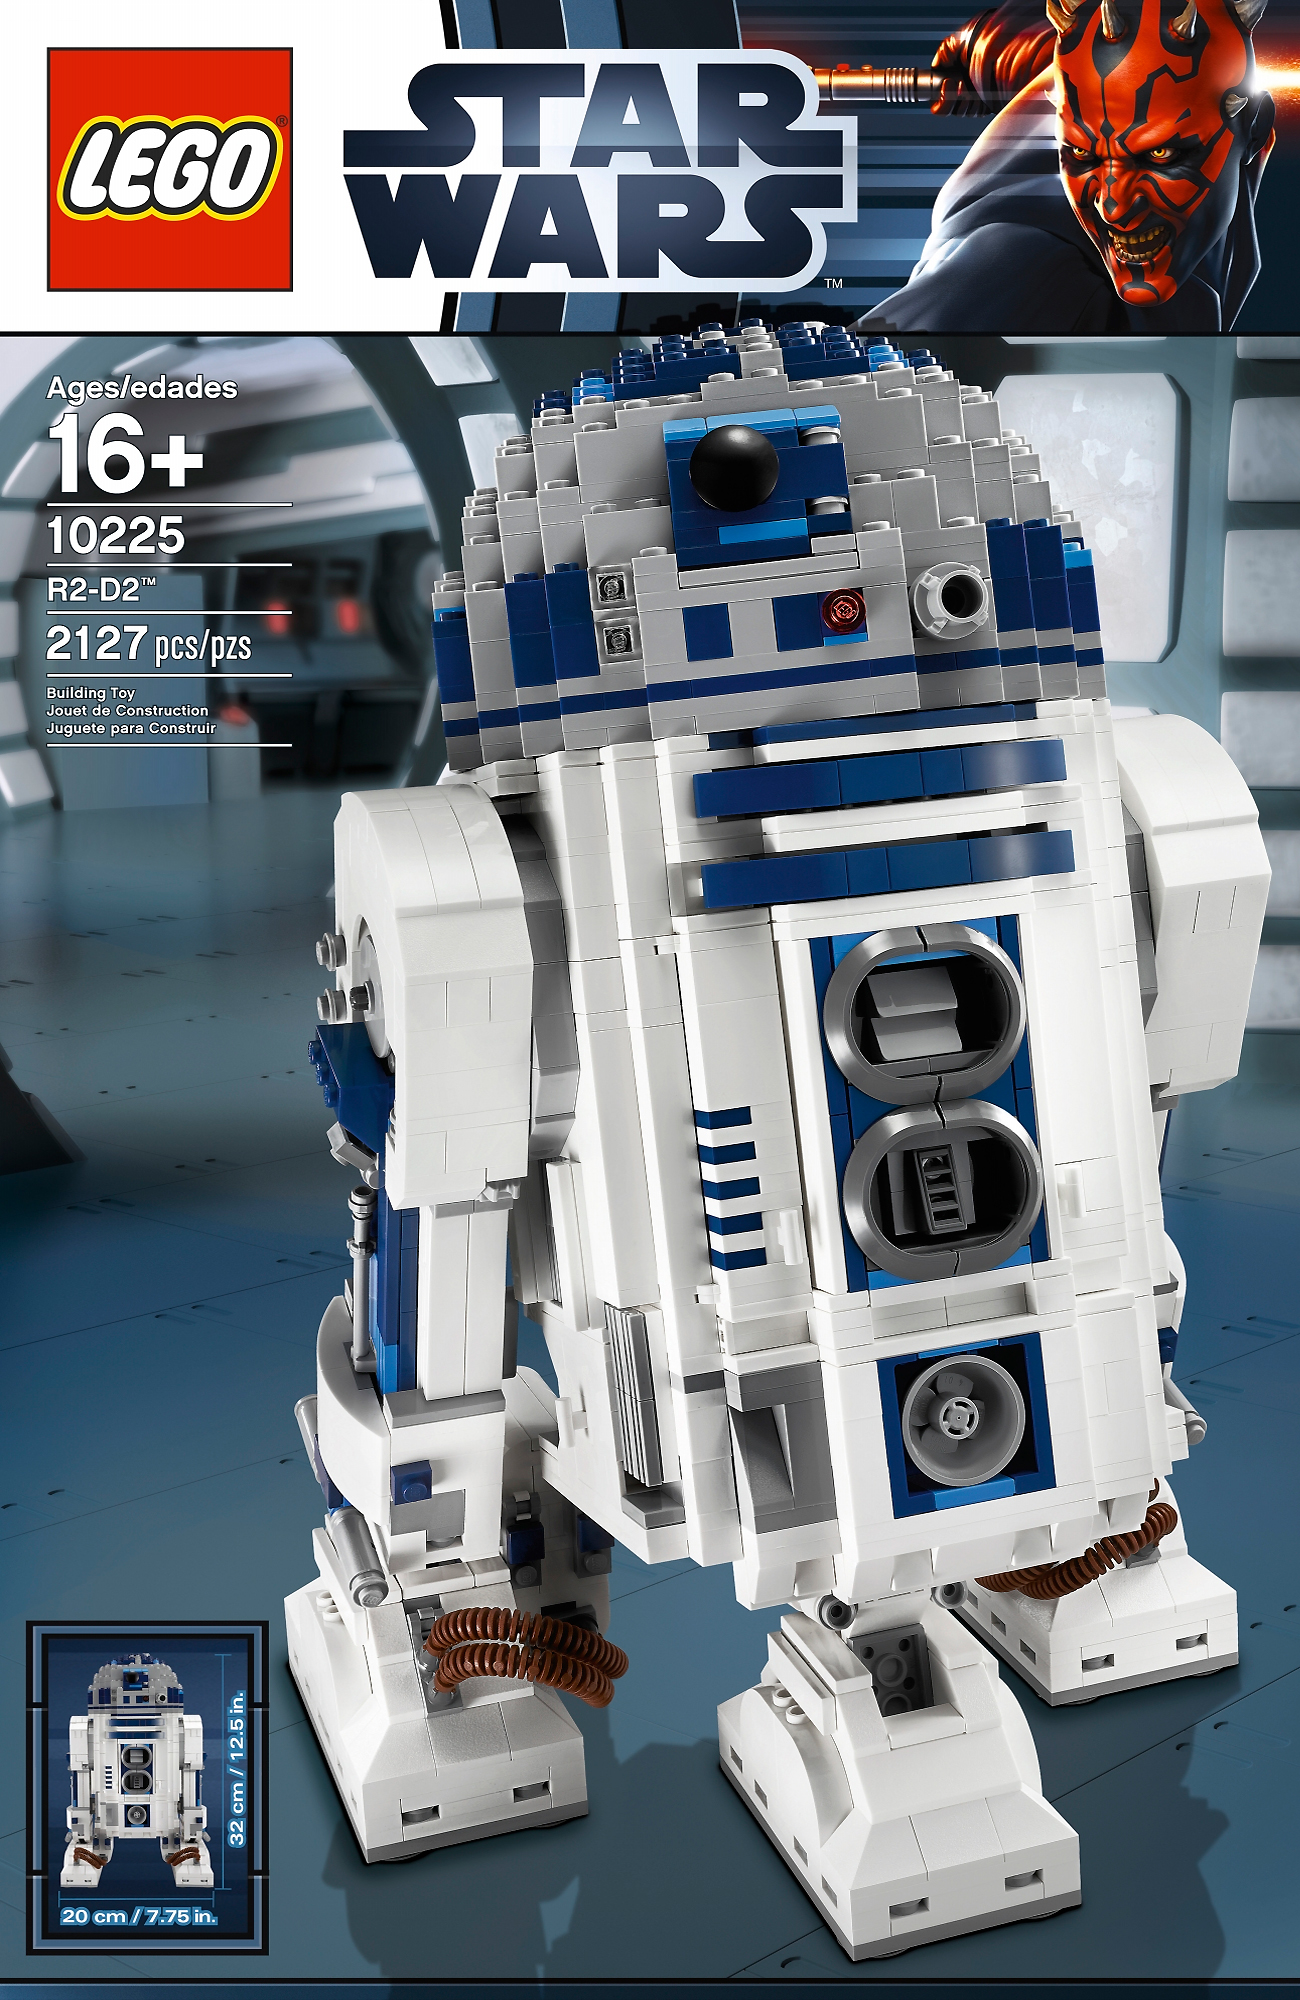 Star Wars Lego Toys : Lego star wars ultimate collectors series r d